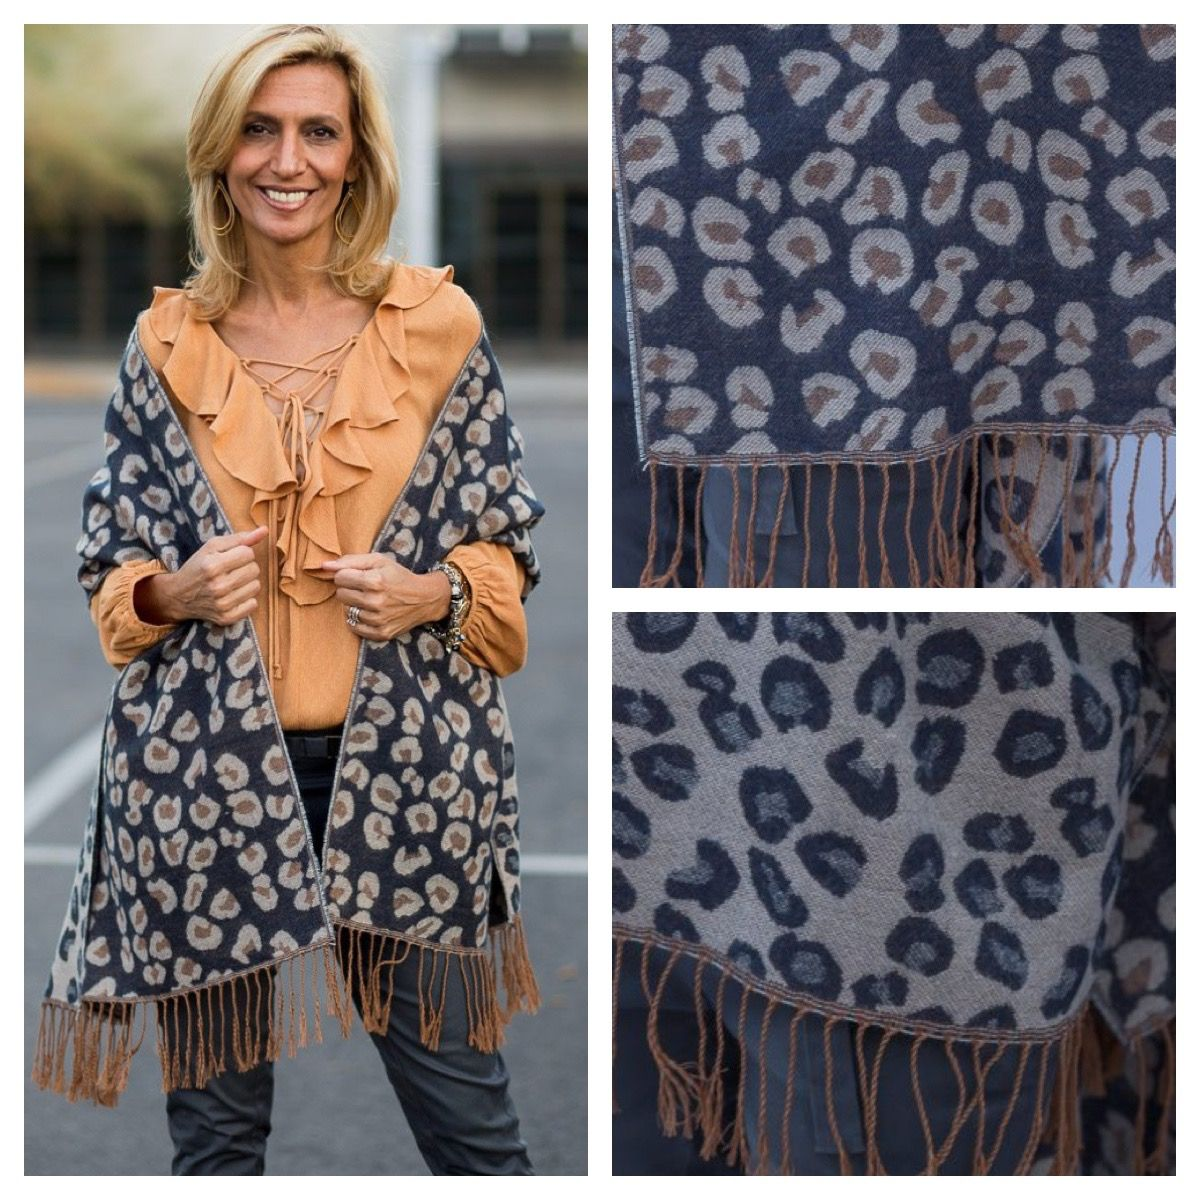 Back in Stock!  Super excited that we have been able to get a few more of our Leopard Reversible Shawls with fringe. Get yours before they sell out again www.jacketsociety.com